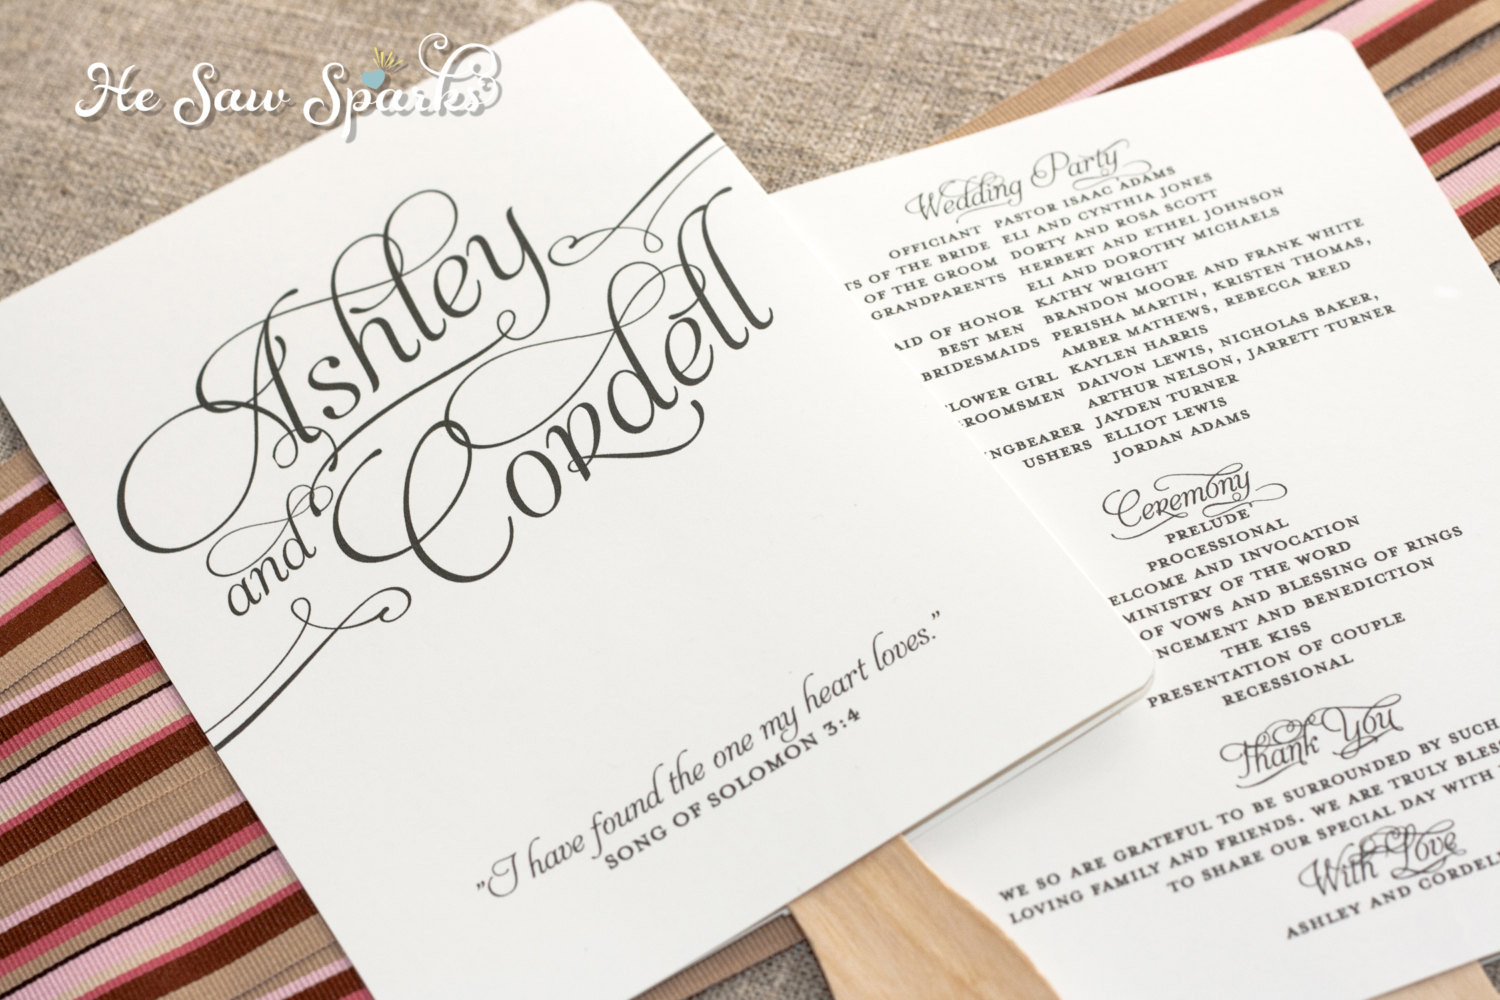 Best ideas about DIY Wedding Program Fan Templates . Save or Pin Matching Paddle Fan Program DIY Printable Now.